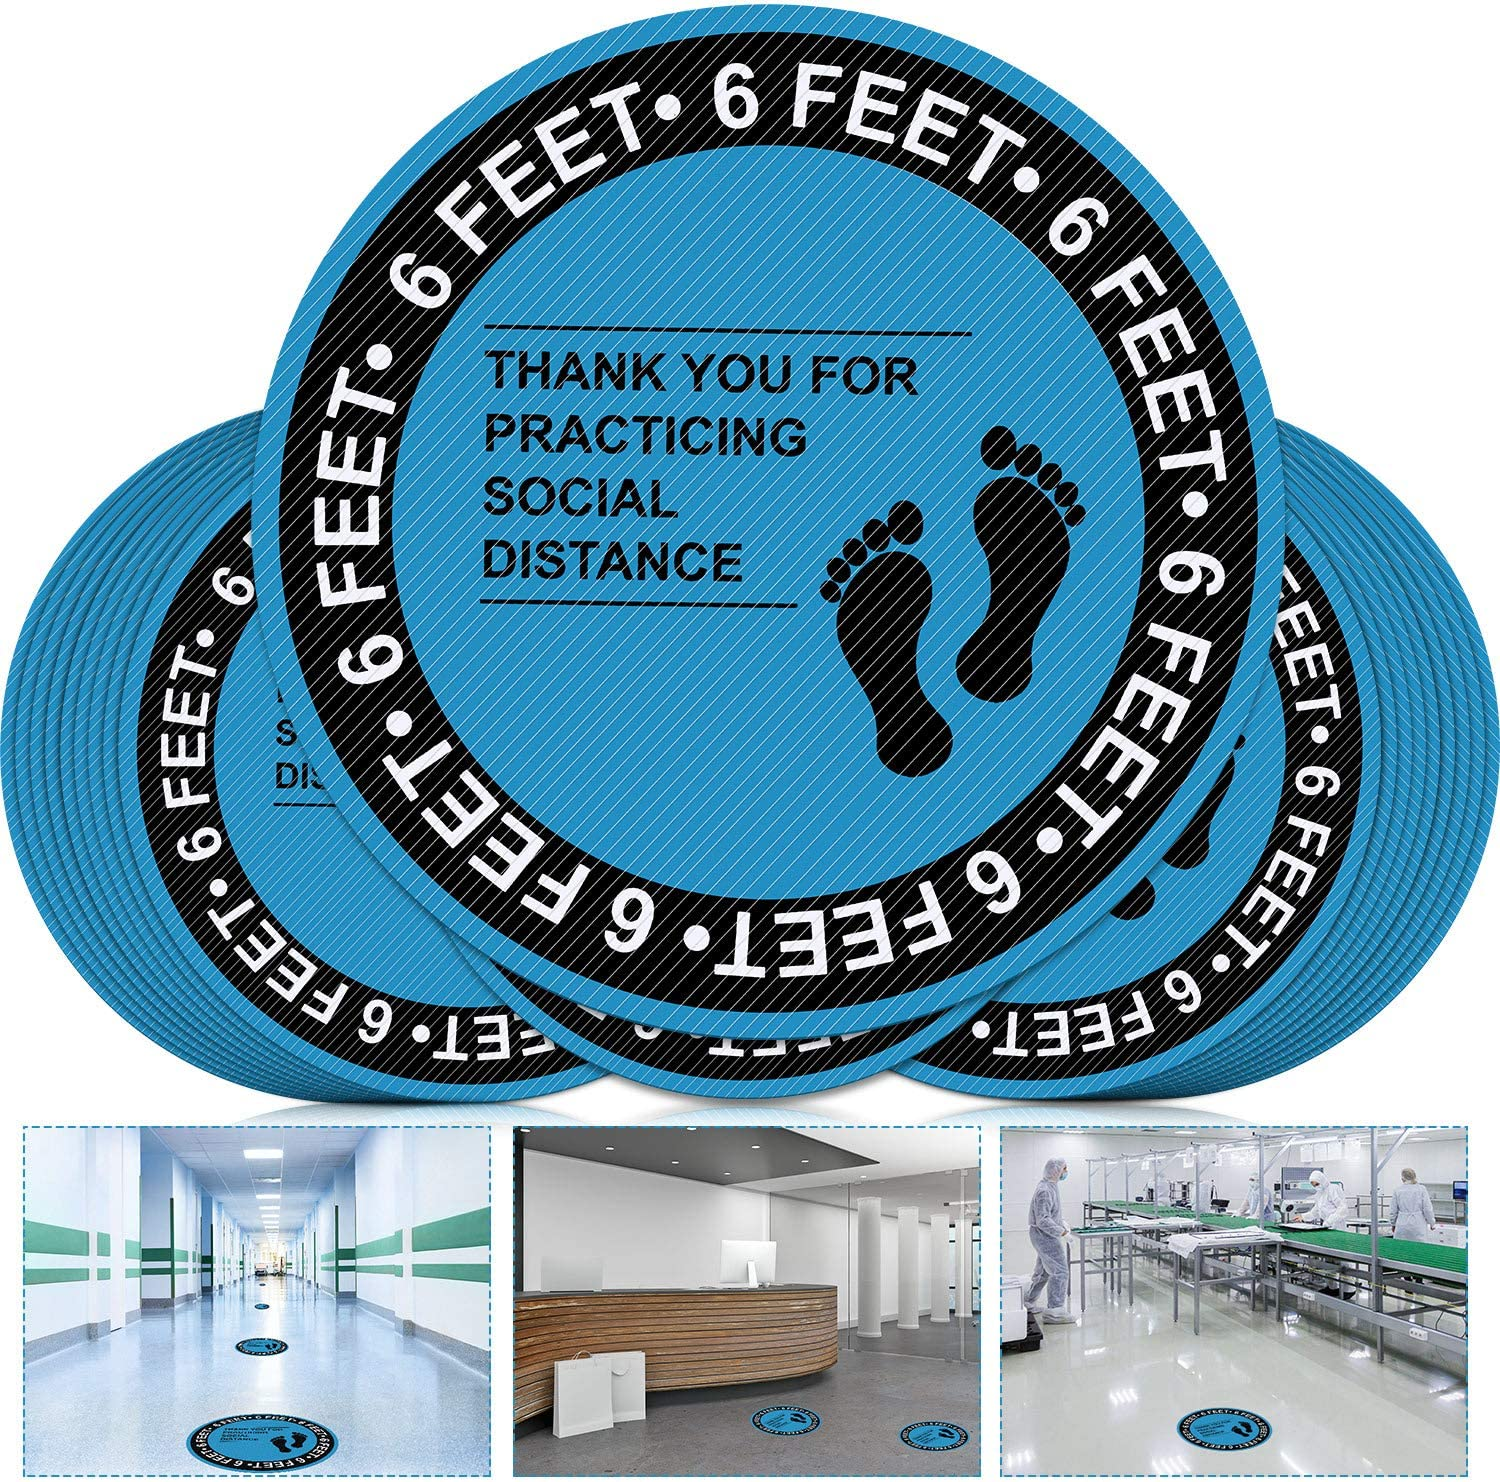 12 Pieces Social Safe Distancing Floor Decal Stickers, 8 Inch Circle Sticker Safety Floor Sign Markers for Crowd Guidance Control, Grocery, Offices, Bank Stand Decal, Waterproof (Blue and Black)